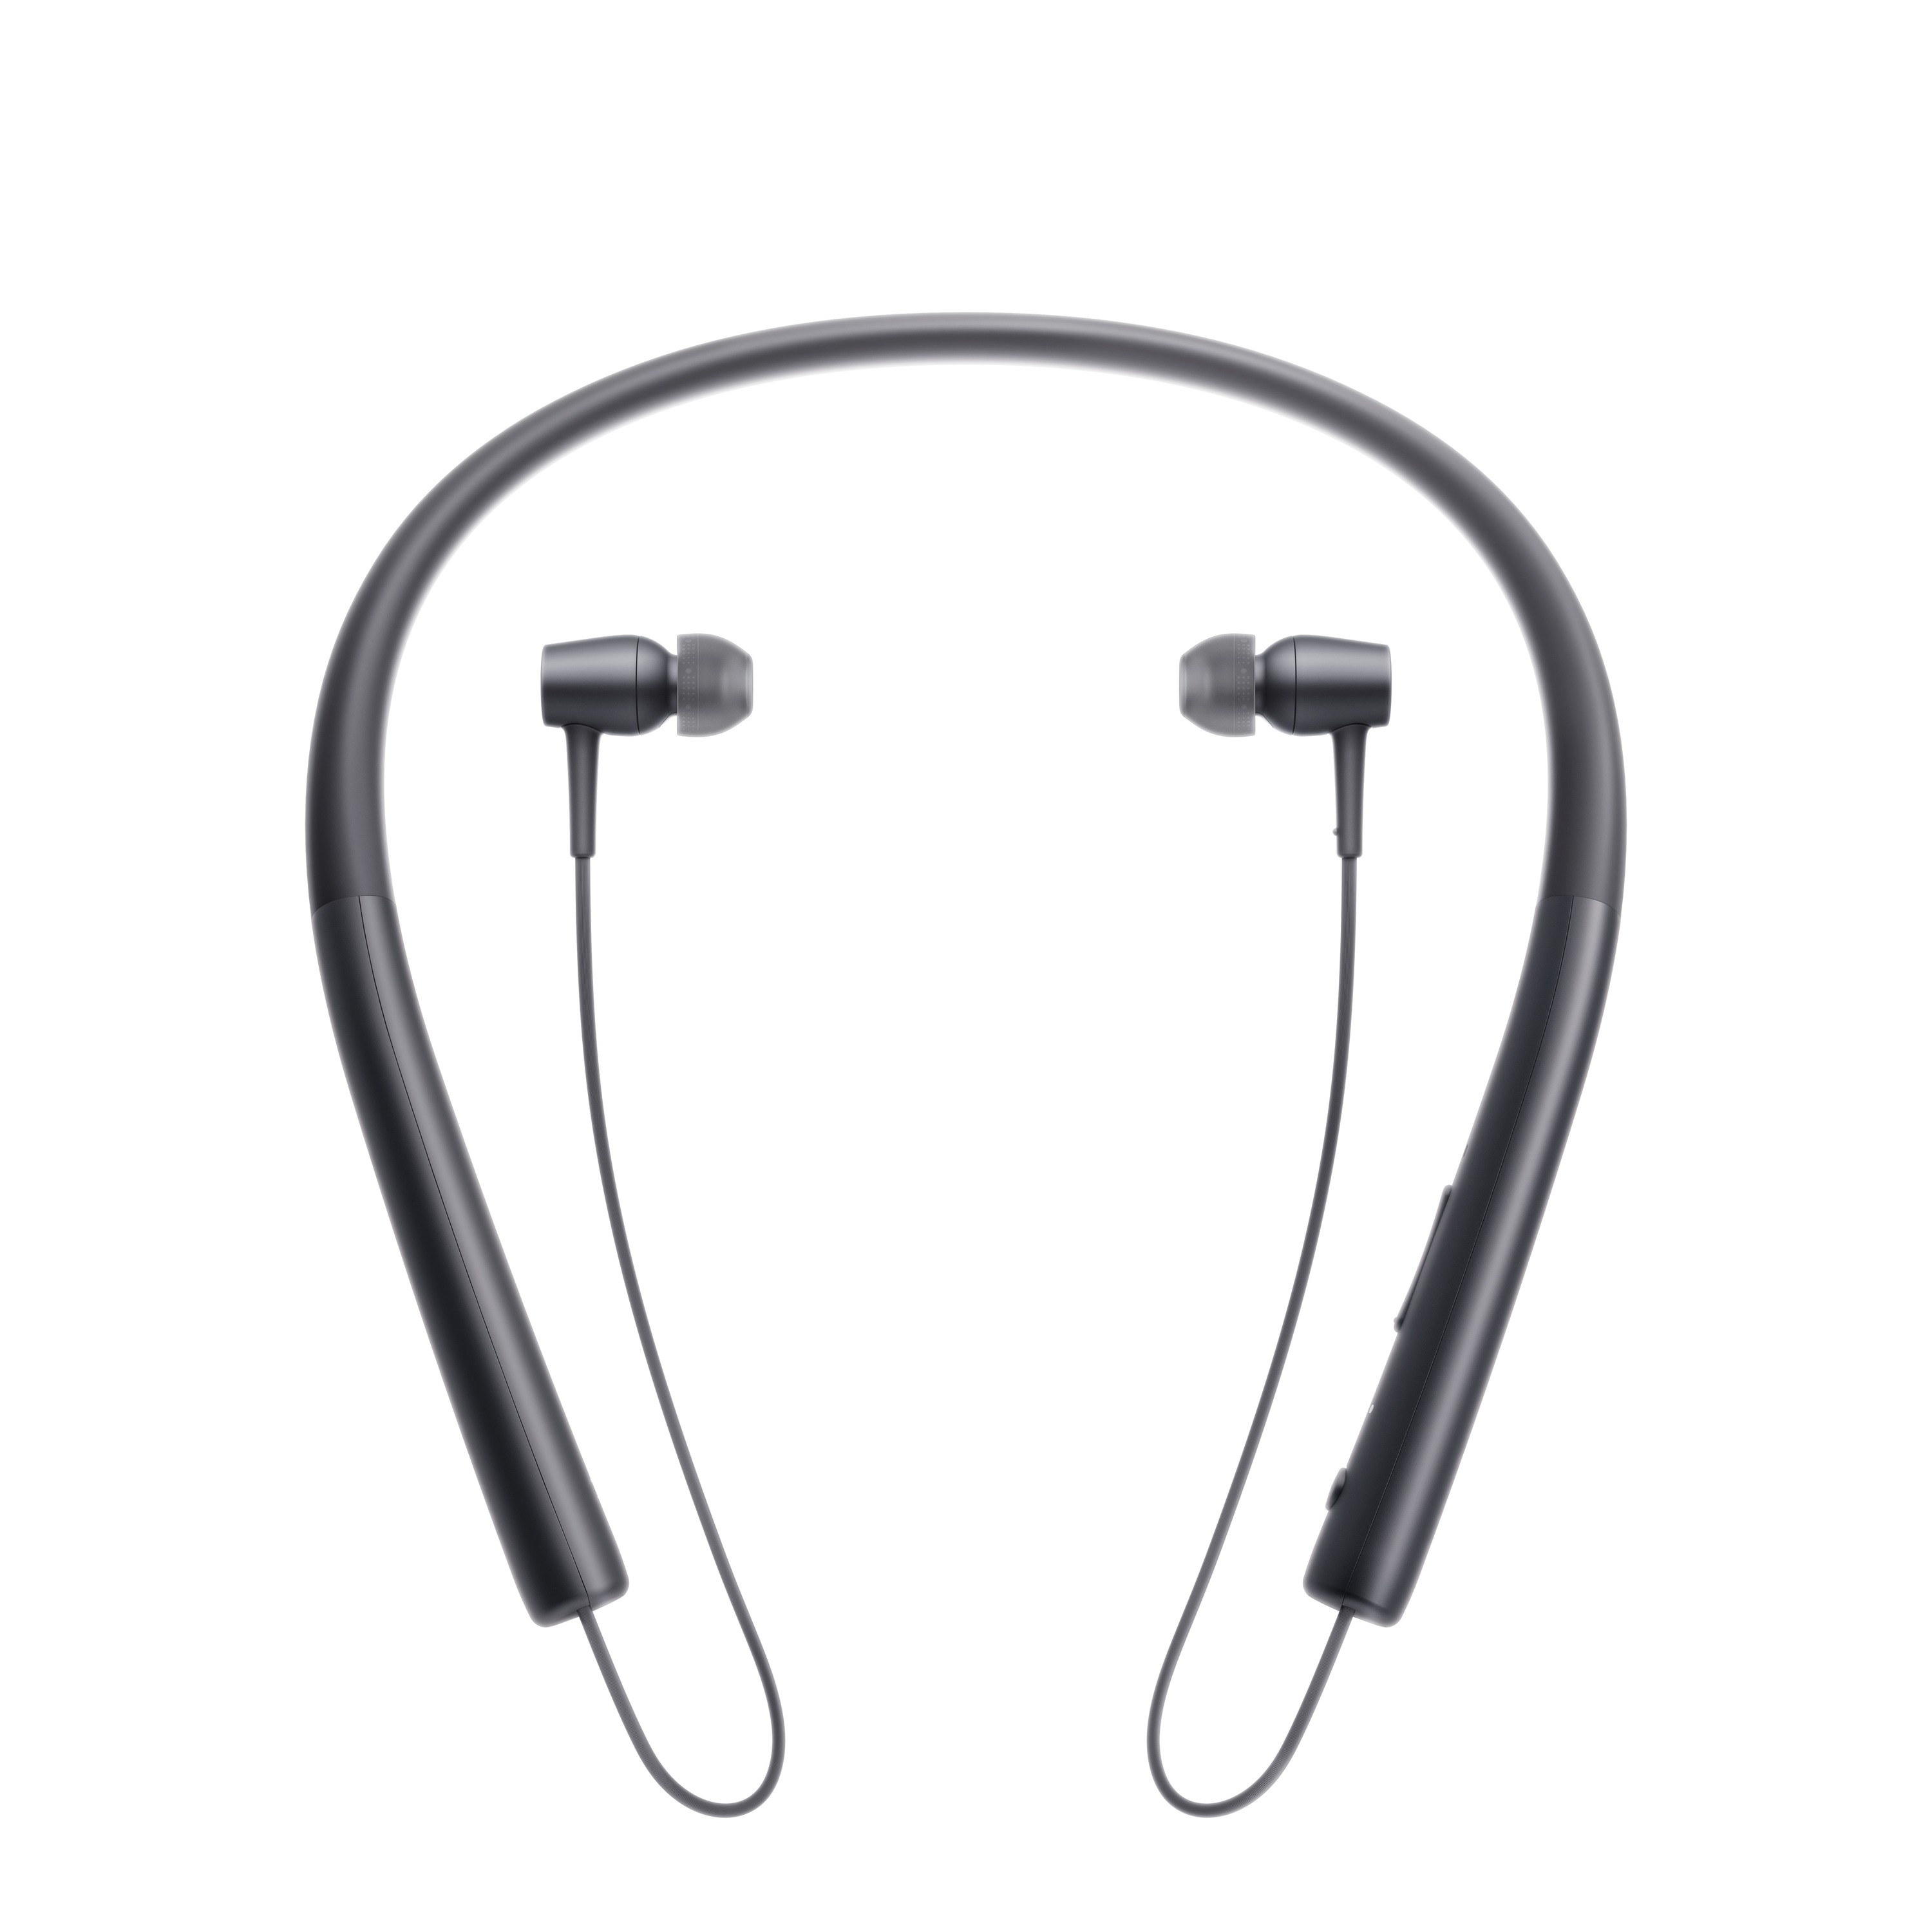 Sony wireless headphones around neck - sony headphones earbuds wireless